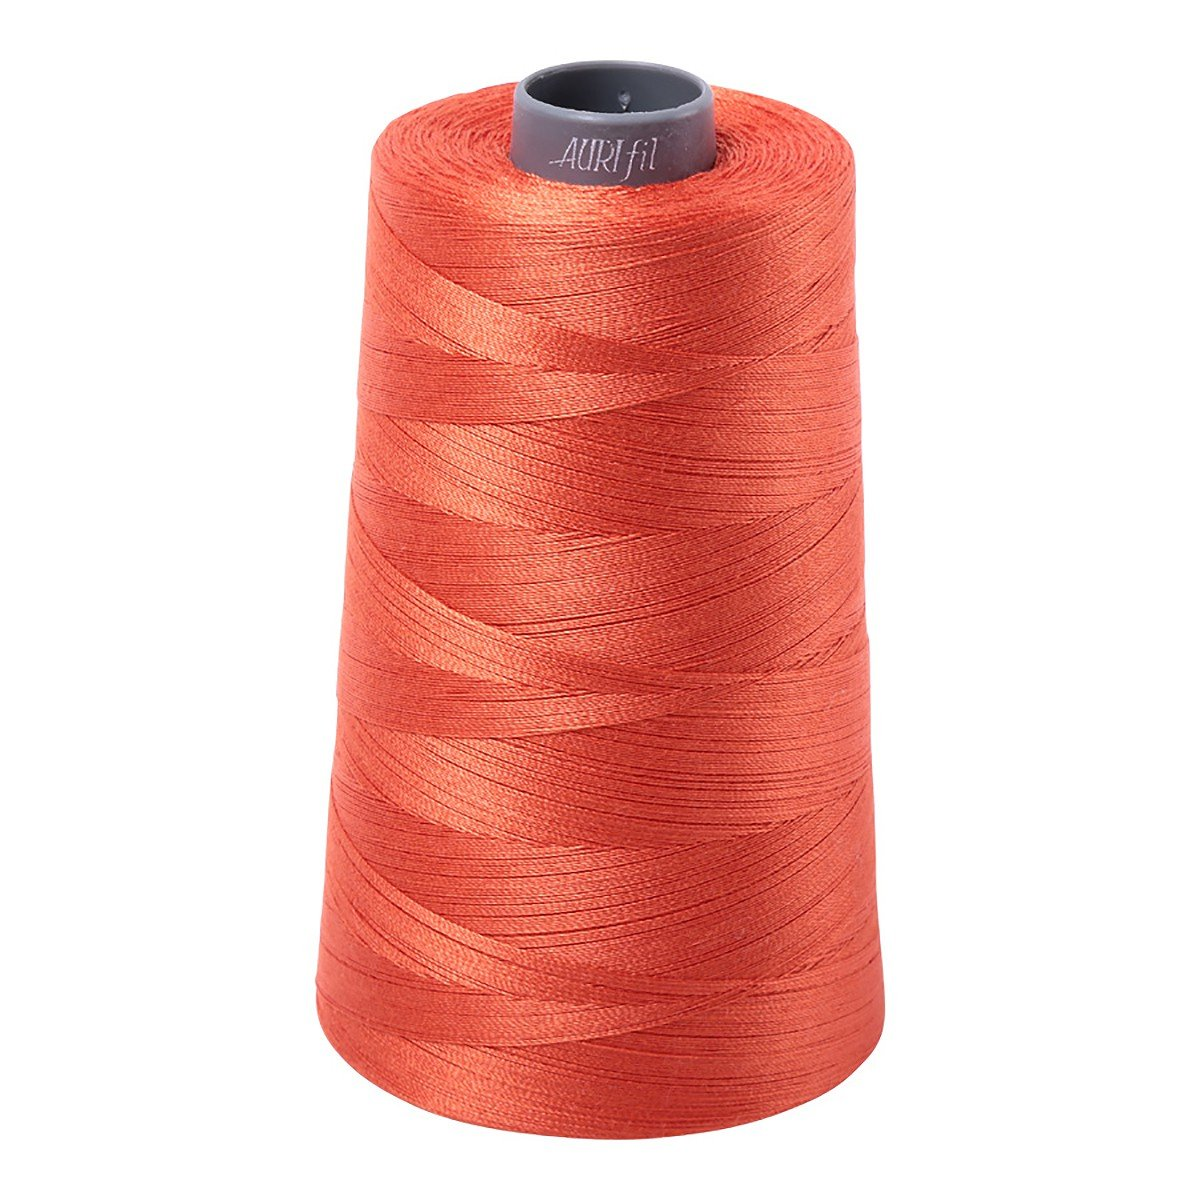 Mako (Cotton) Embroidery Thread 28wt 3609yds Dusty Orange